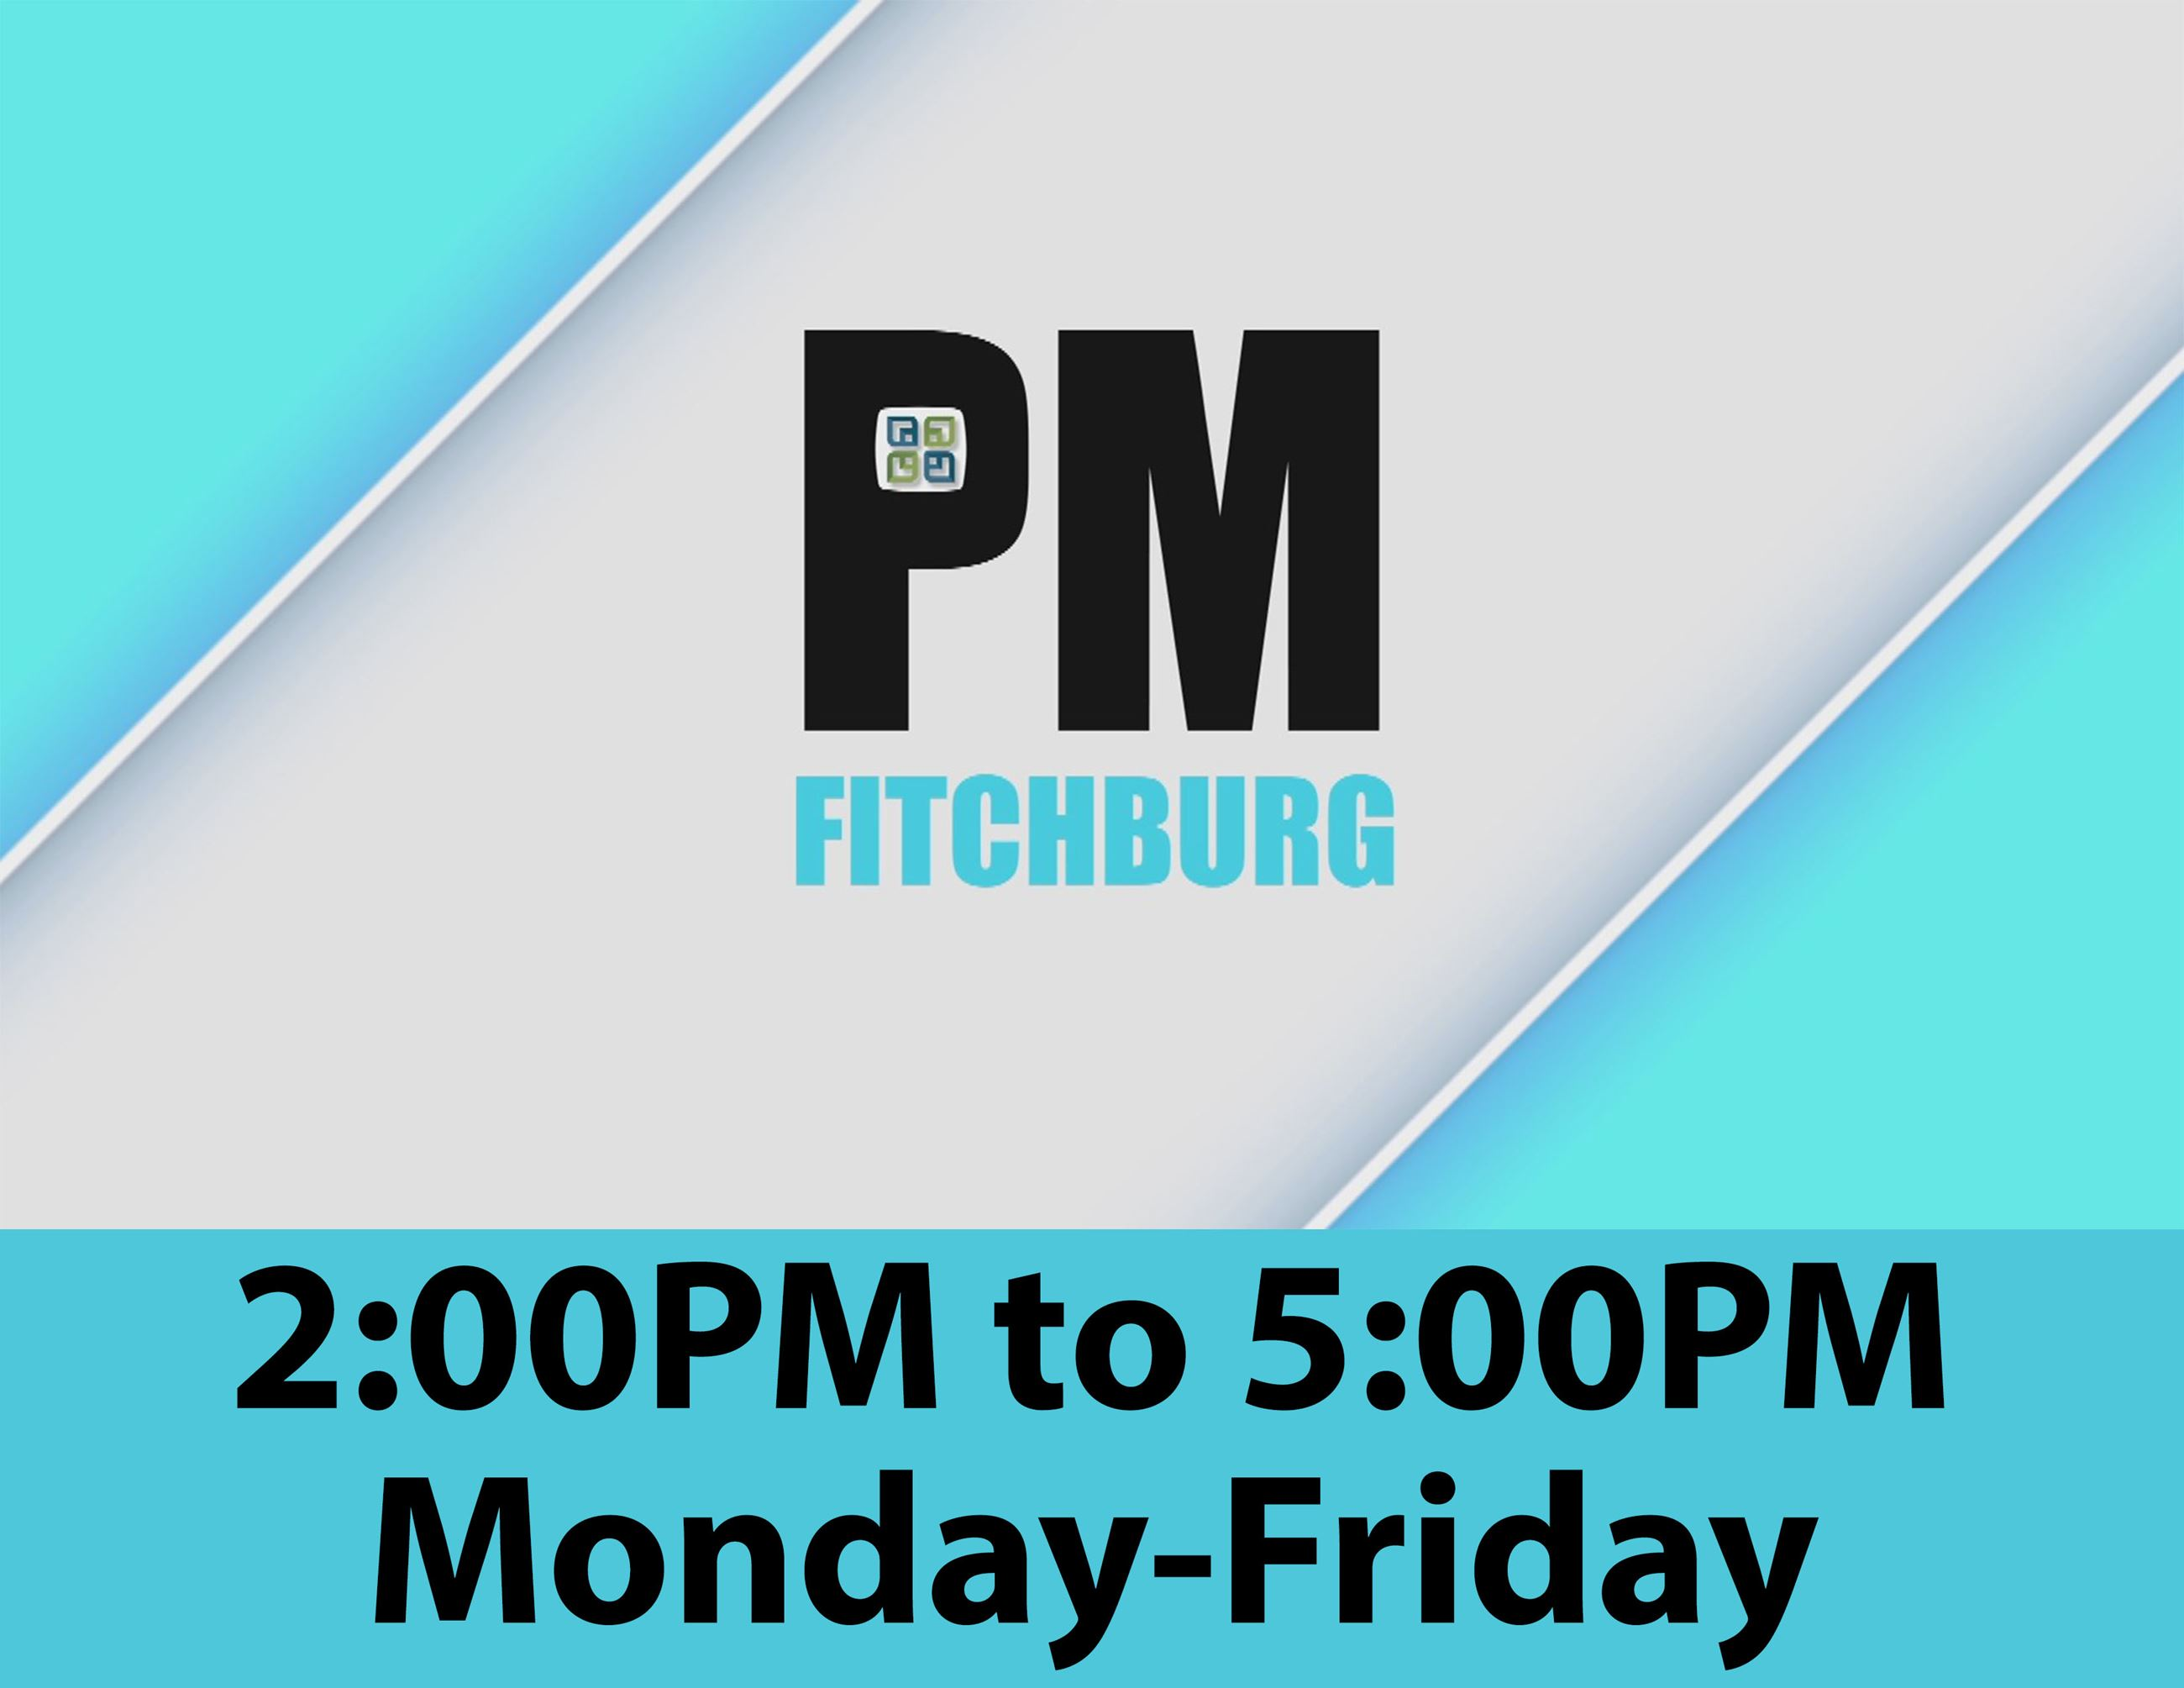 PM Fitchburg